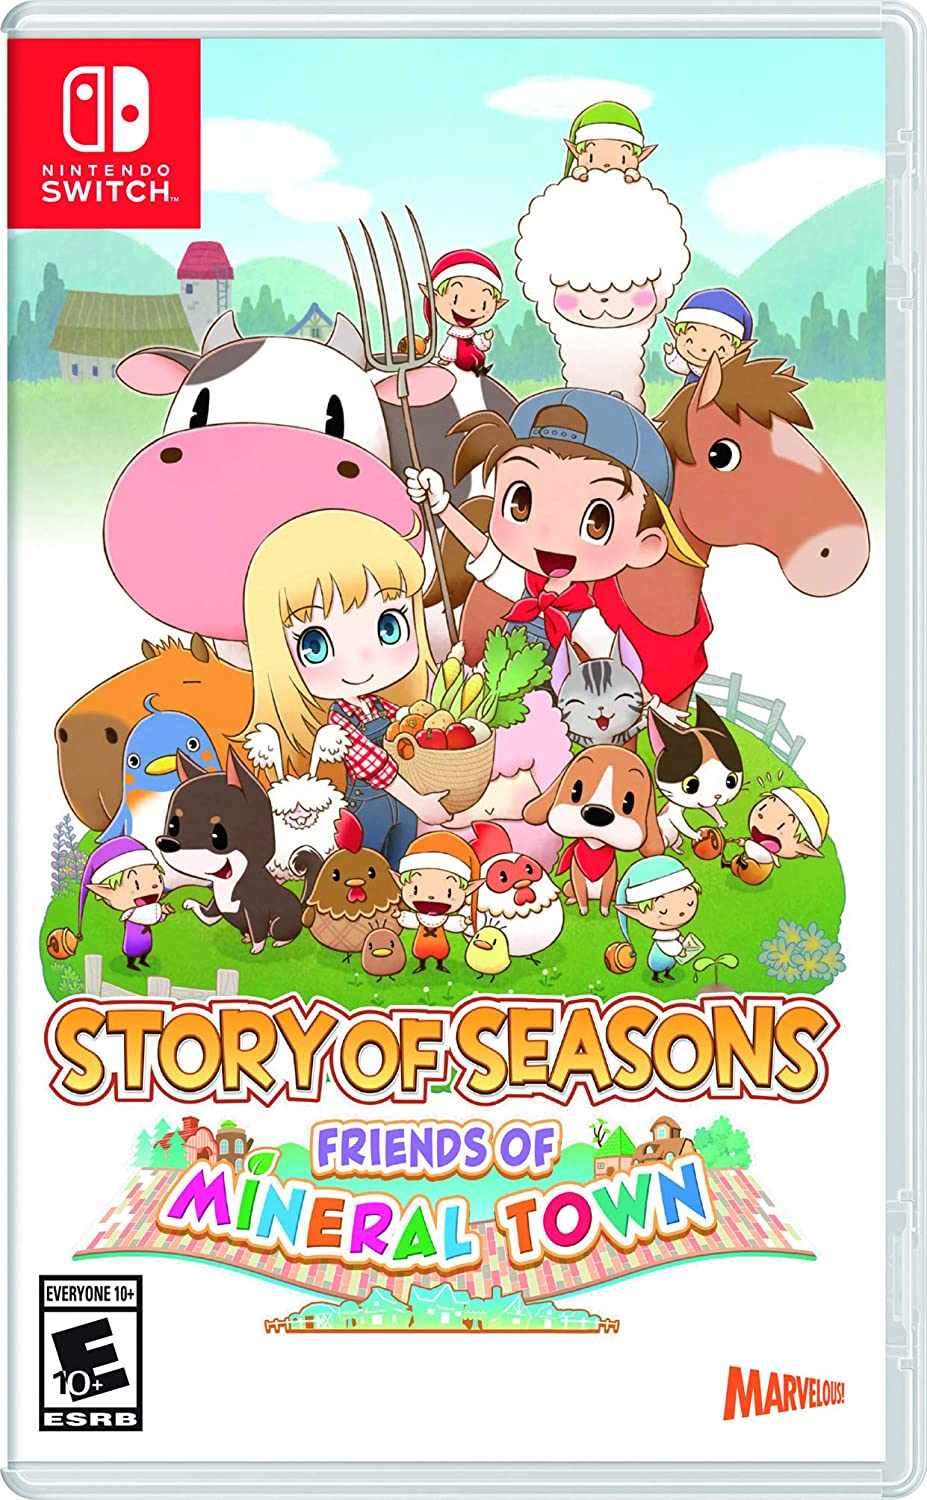 Story of Seasons: Friends of Mineral Town (Pré-venda) - Nintendo Switch